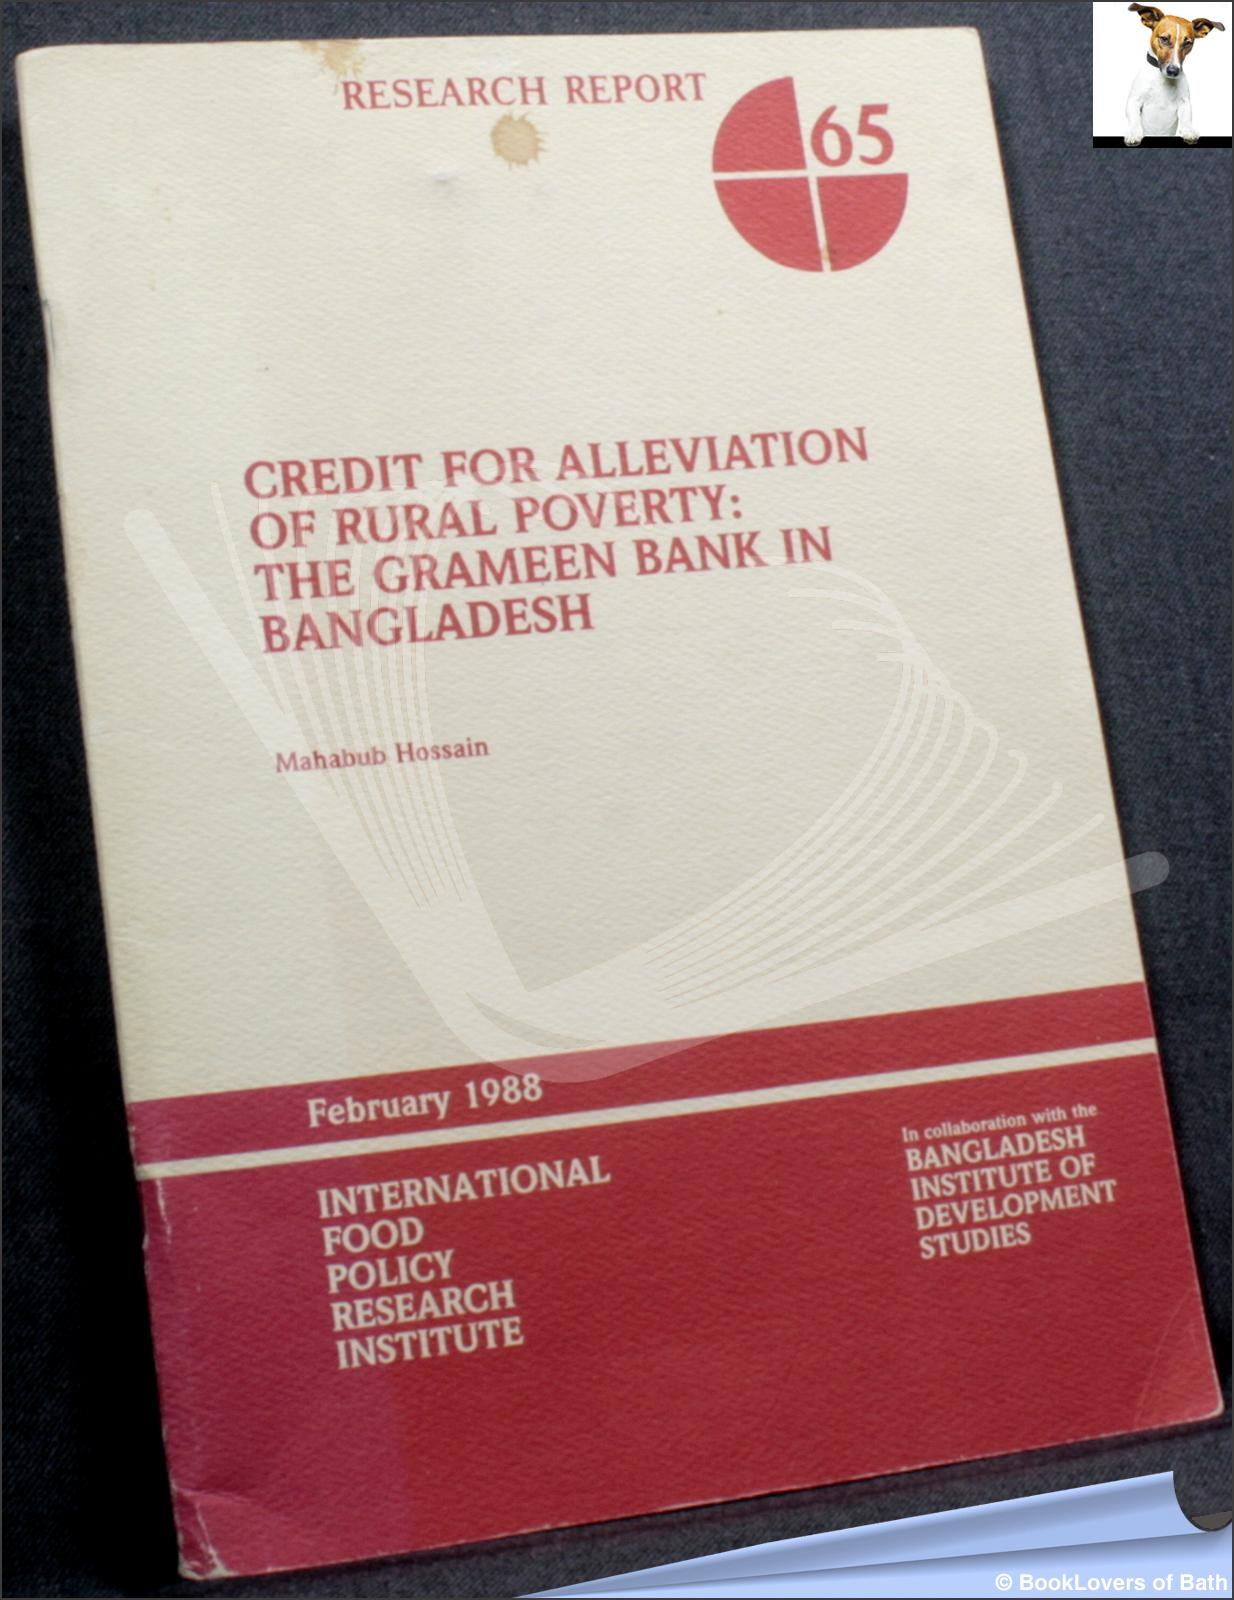 Credit for Alleviation of Rural Poverty: The Grameen Bank in Bangladesh - Mahabub Hossain